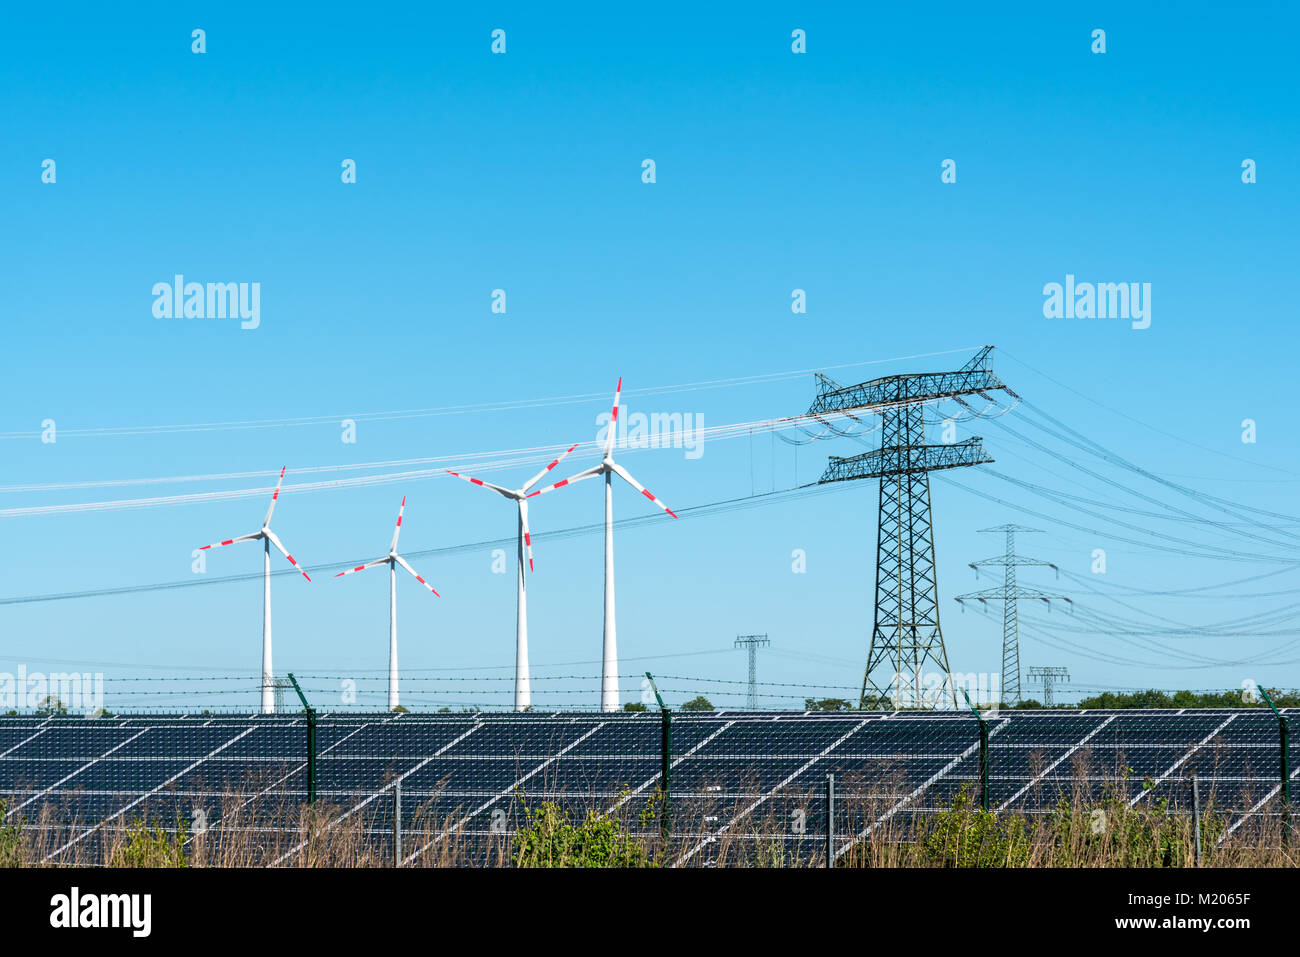 Renewable energy and transmission lines seen in Germany - Stock Image